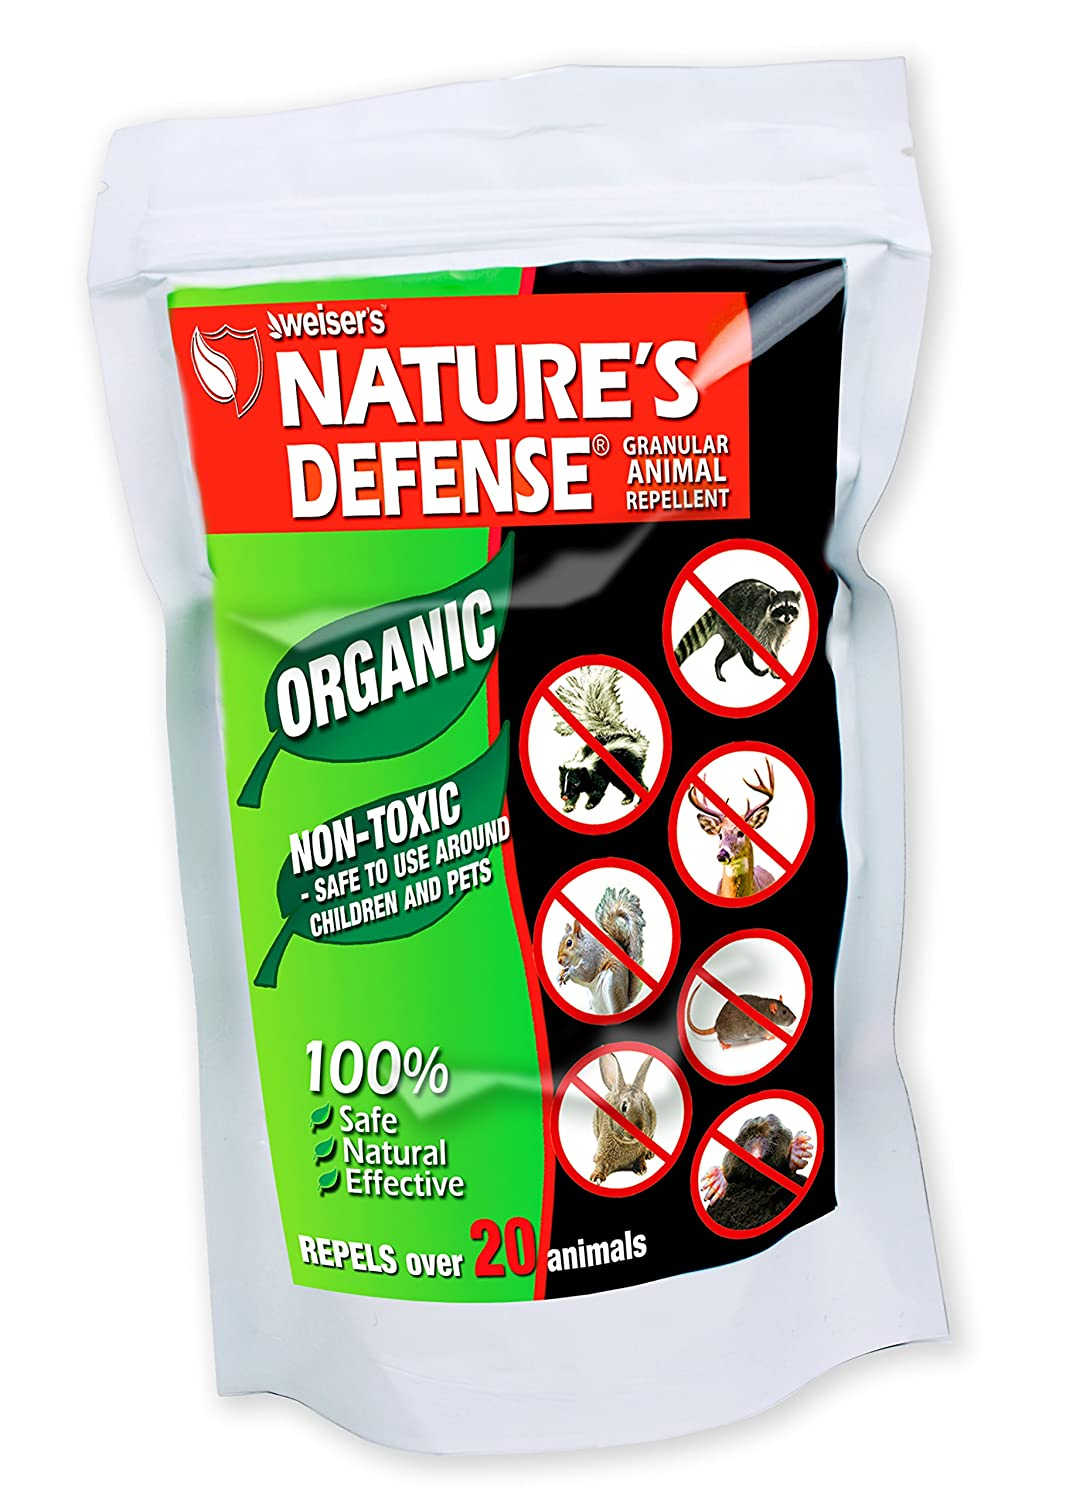 Bird-X Nature's Defense Organic Mouse and Rat Repellent, 22-Ounce, Covers  3,500 sq  ft